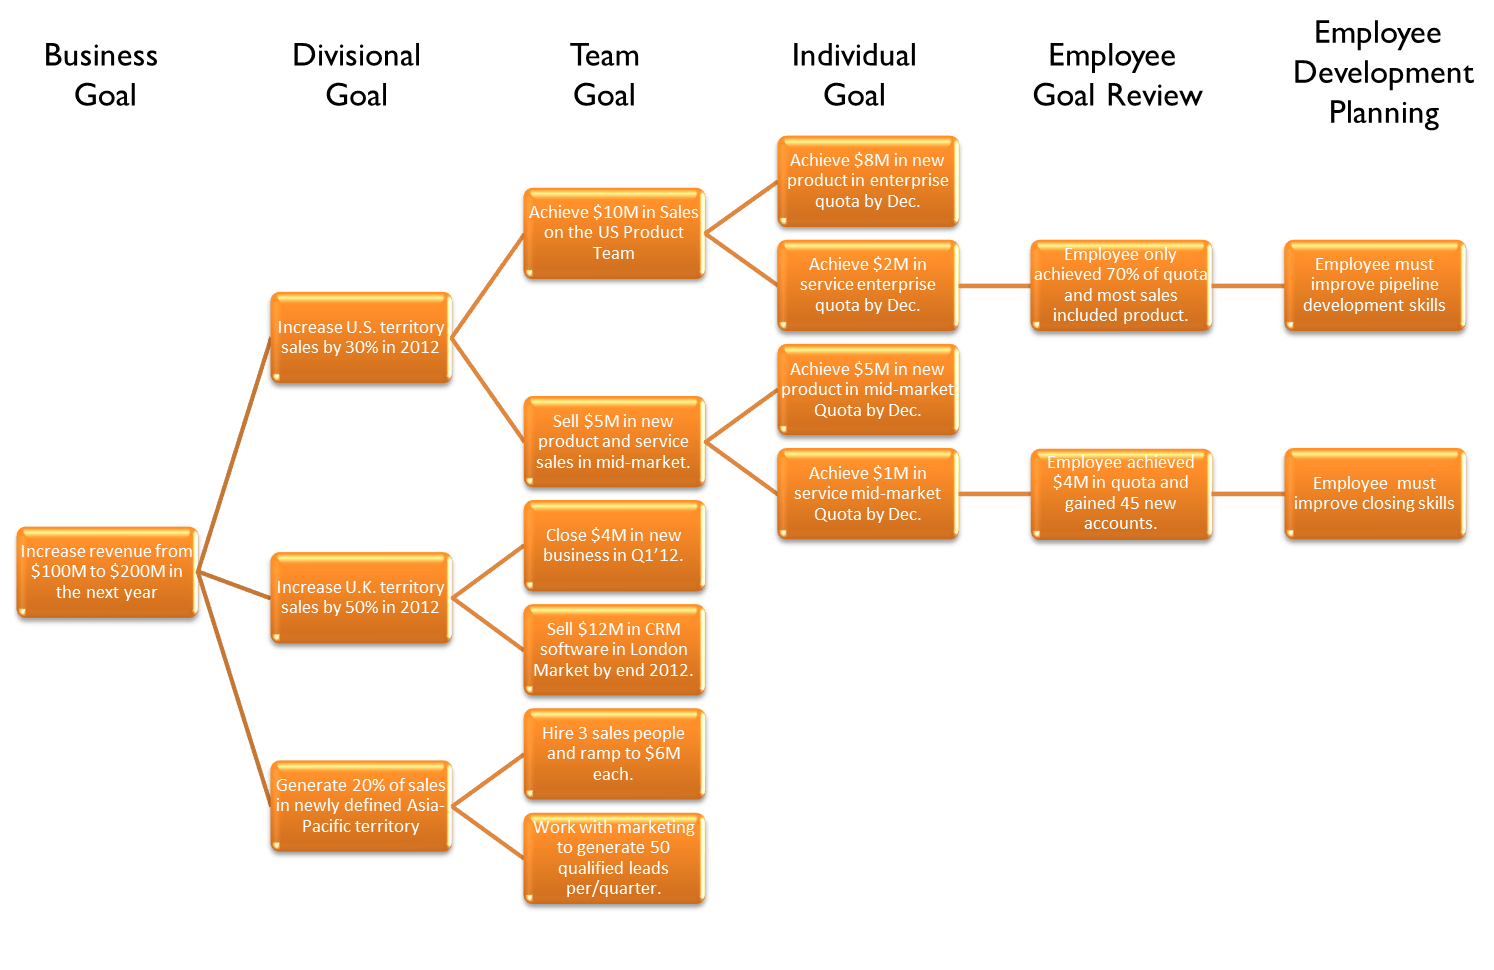 Linking Cascading Goals To Employee Performance Management